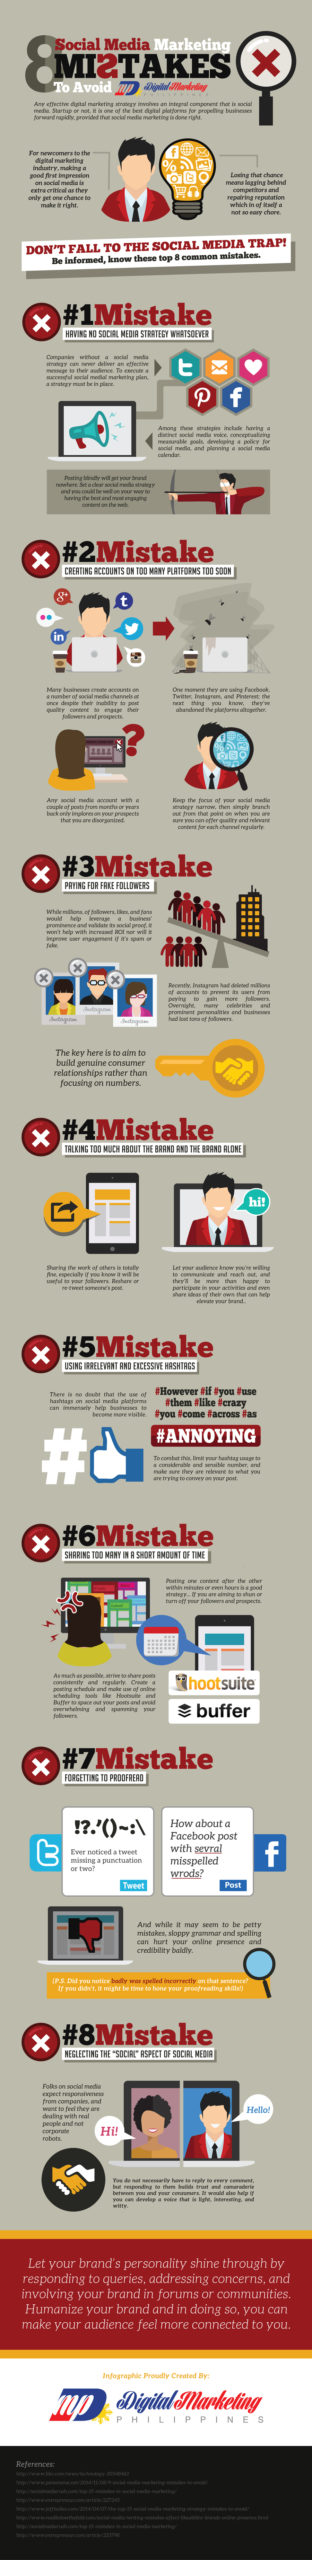 8 Social Media Marketing Mistakes to Avoid Infographic Image